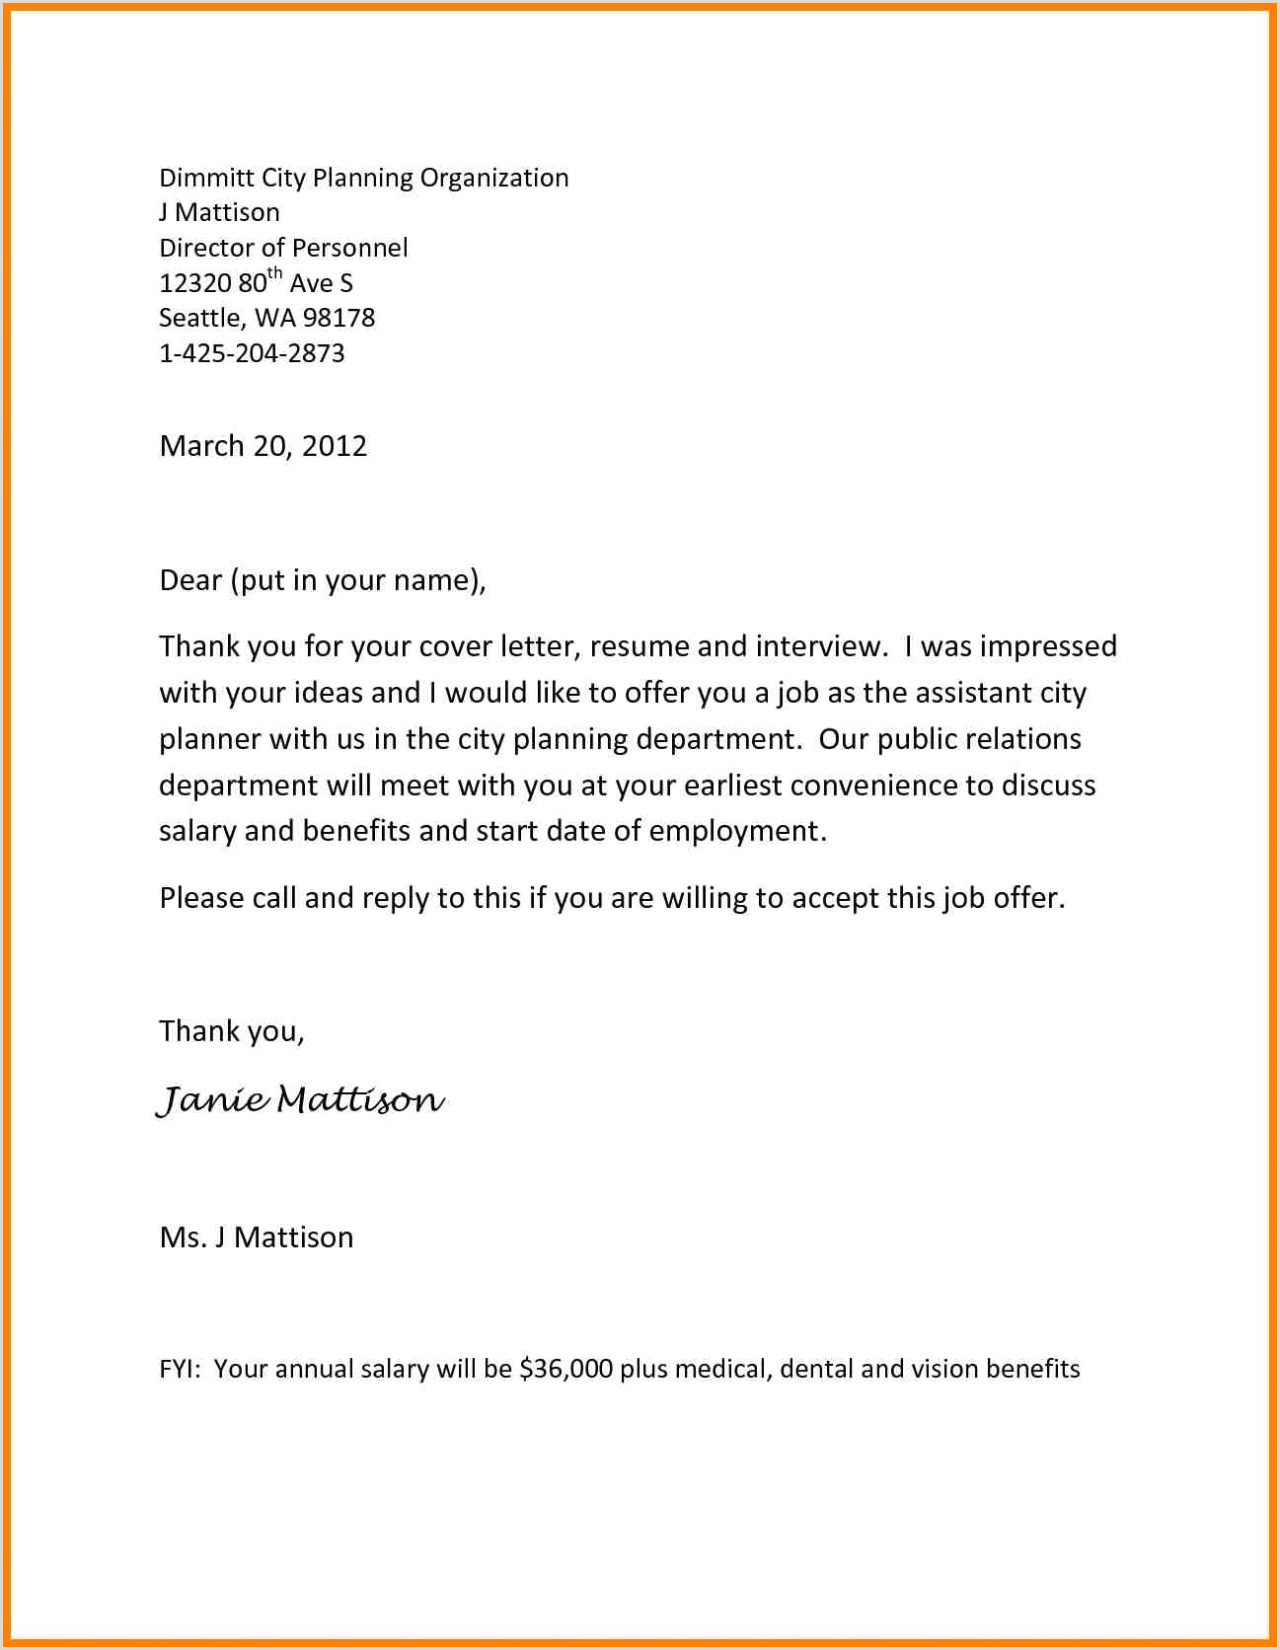 Email Reply to Job Offer Work Fer Letter Template Samples